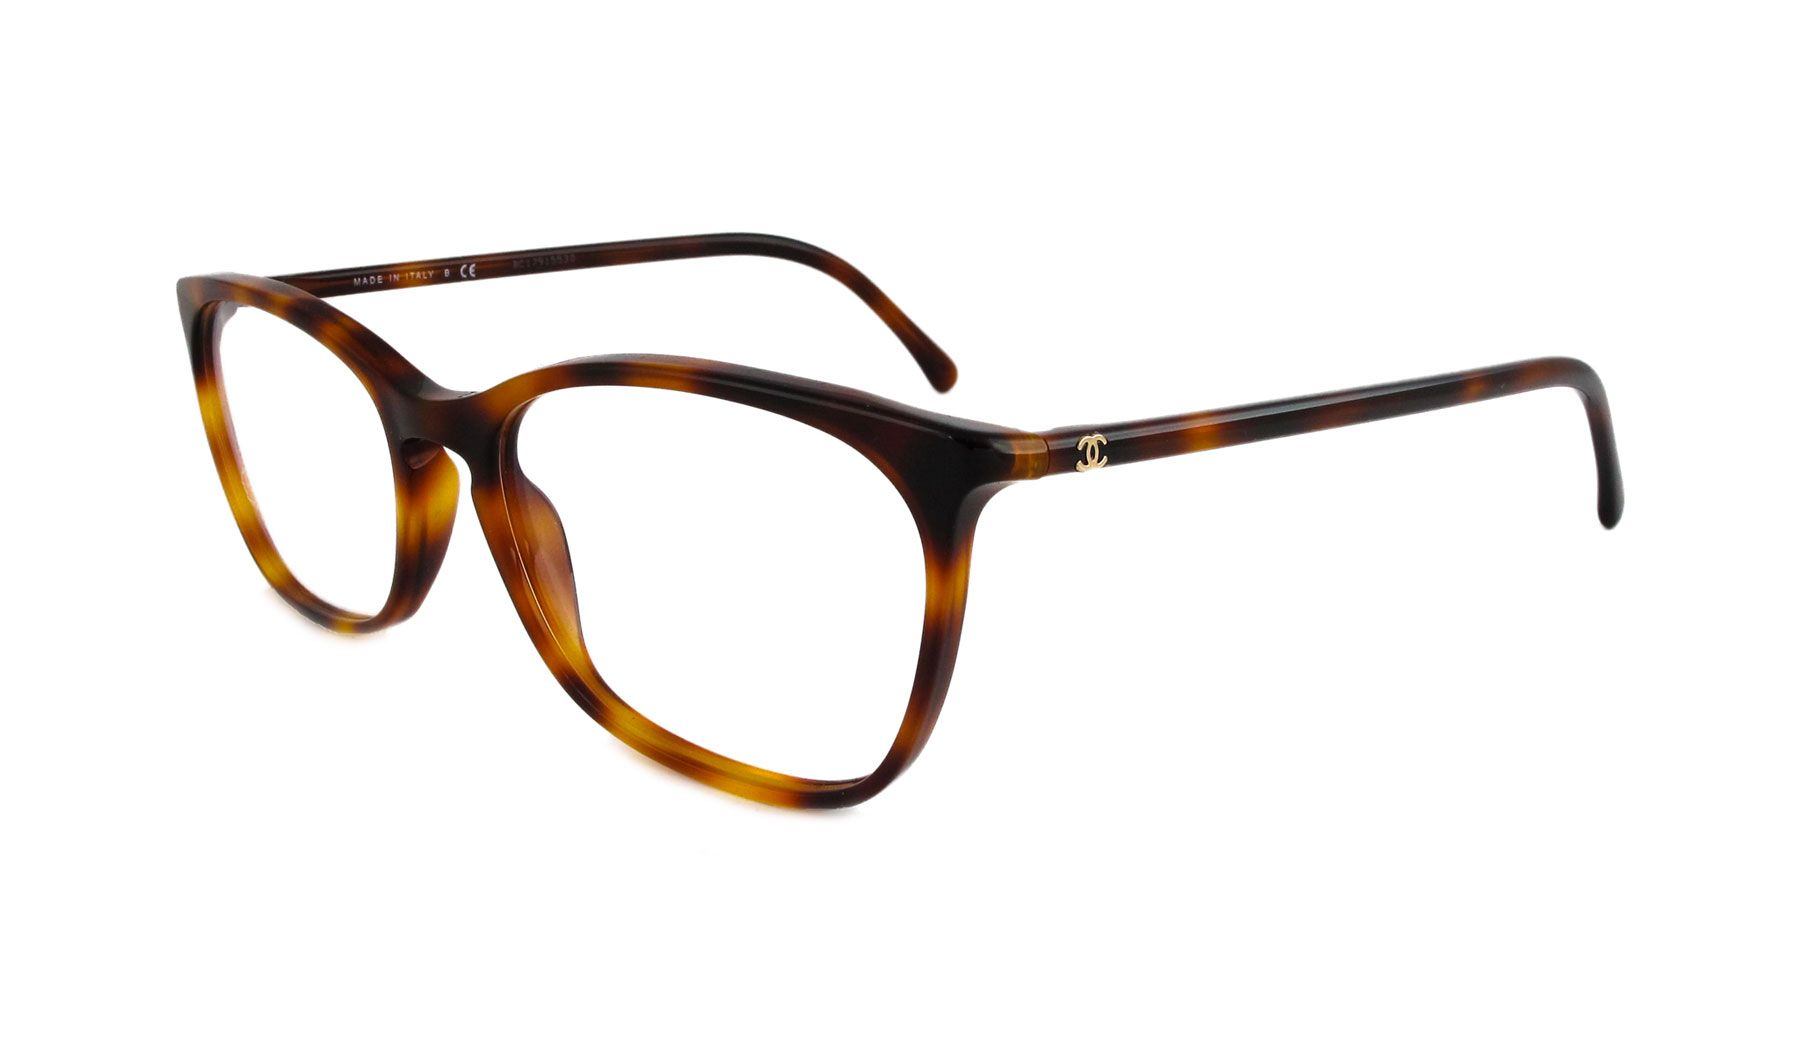 ray ban wayfarer sunglasses vision express  10+ images about glasses on pinterest